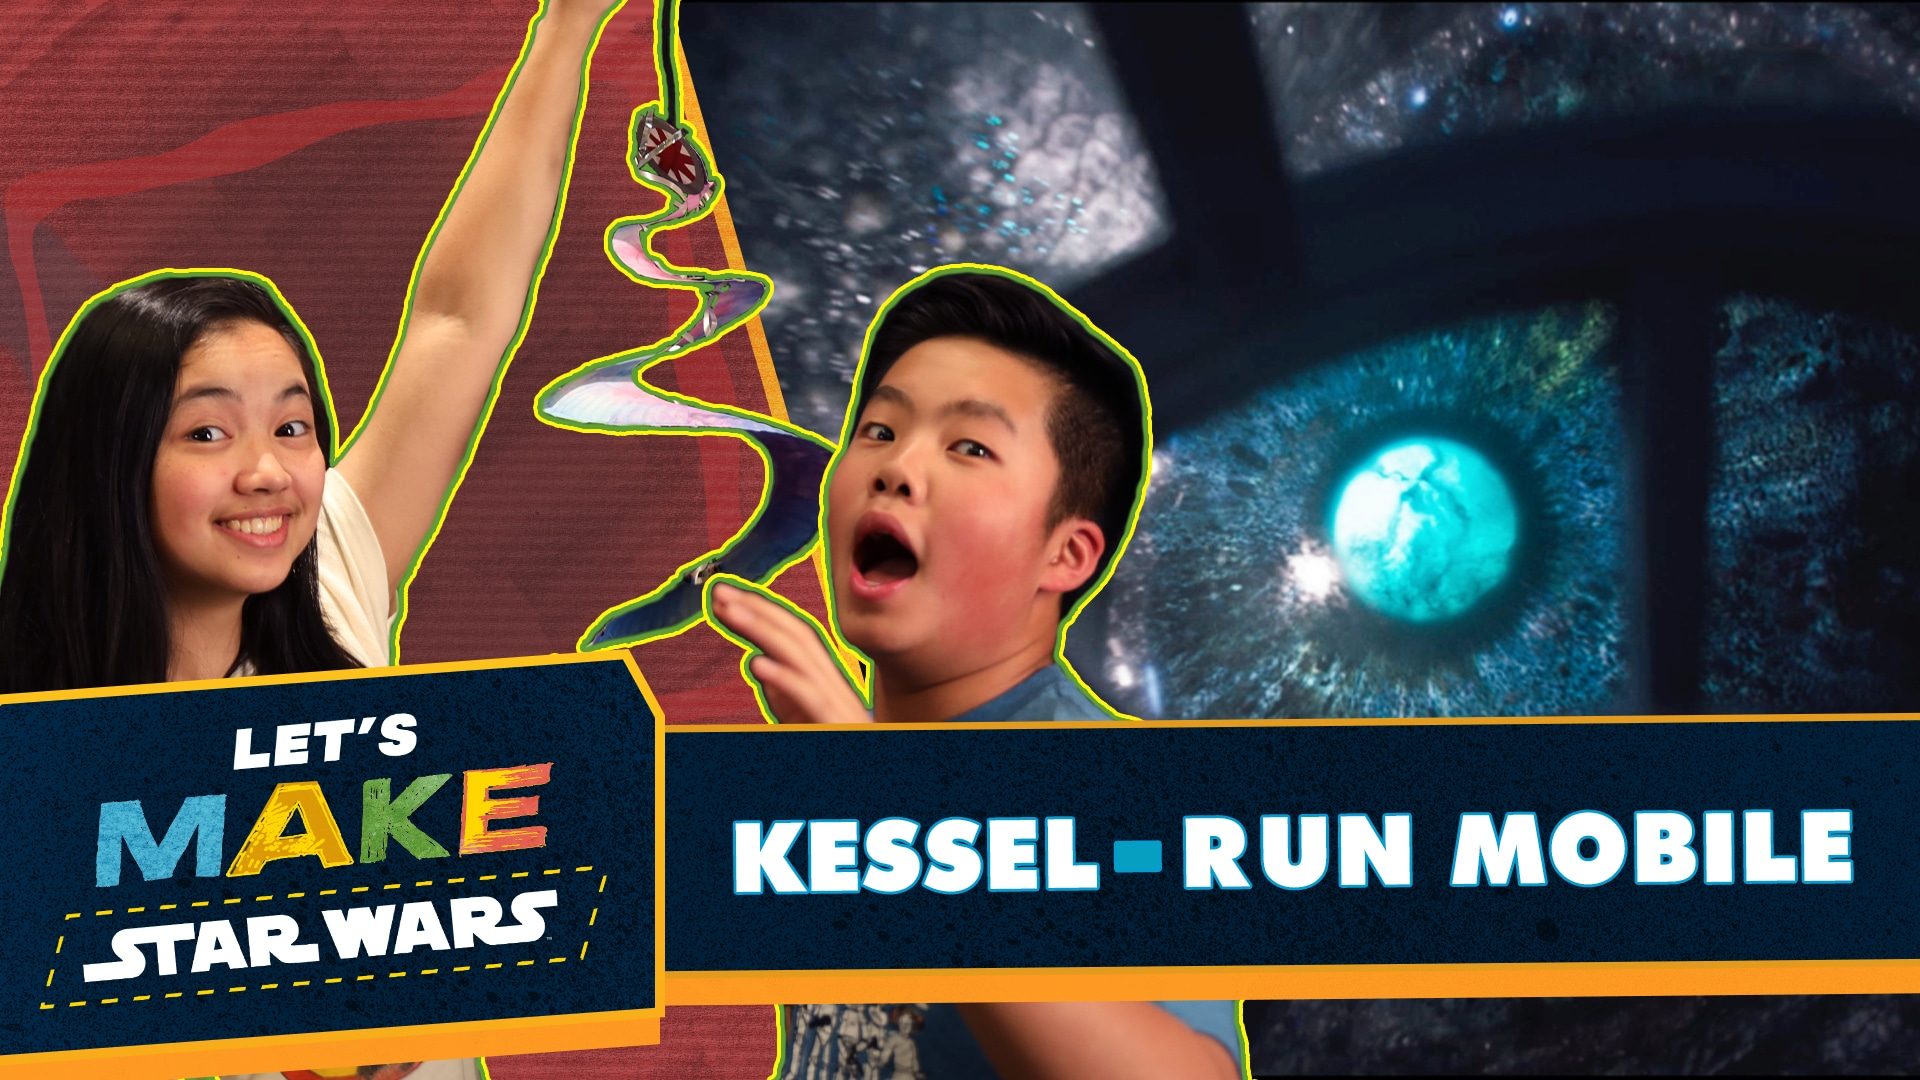 How to Make a Kessel Run Mobile | Let's Make Star Wars